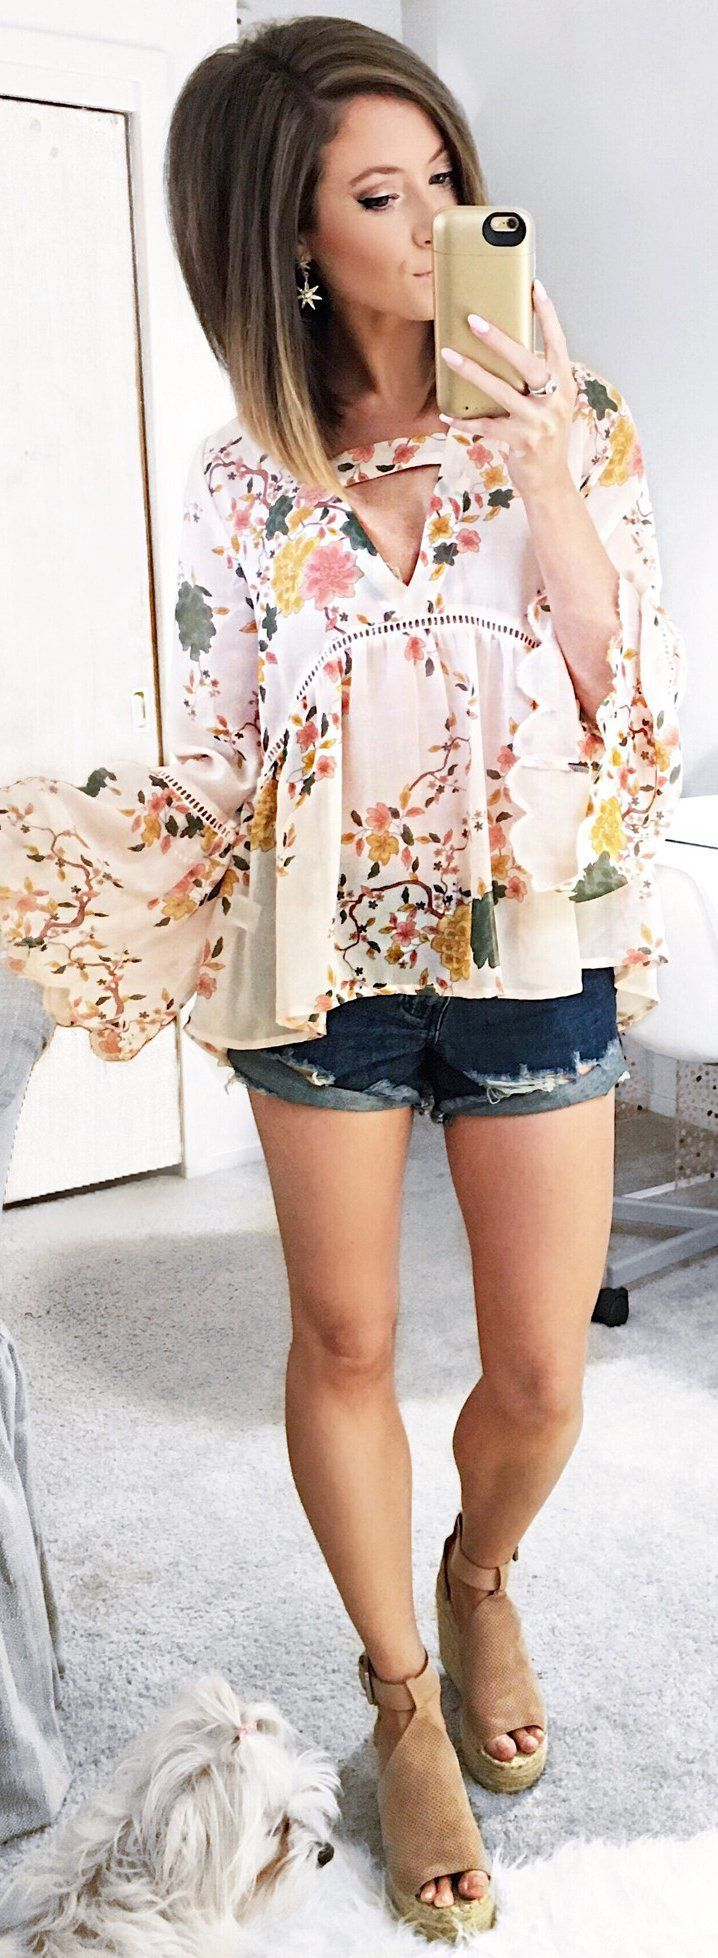 White Flower Printed Blouse / Denim Short / Brown Suede Platform.Sun & Shadow Floral Print Bell Sleeve Blouse Blush Washed Floral Trending Summer Spring Fashion Outfit to Try This 2017 Great for Wedding,casual,Flowy,Black,Maxi,Idea,Party,Cocktail,Hippe,Fashion,Elegant,Chic,Bohemian,Hippie,Gypsy,Floral